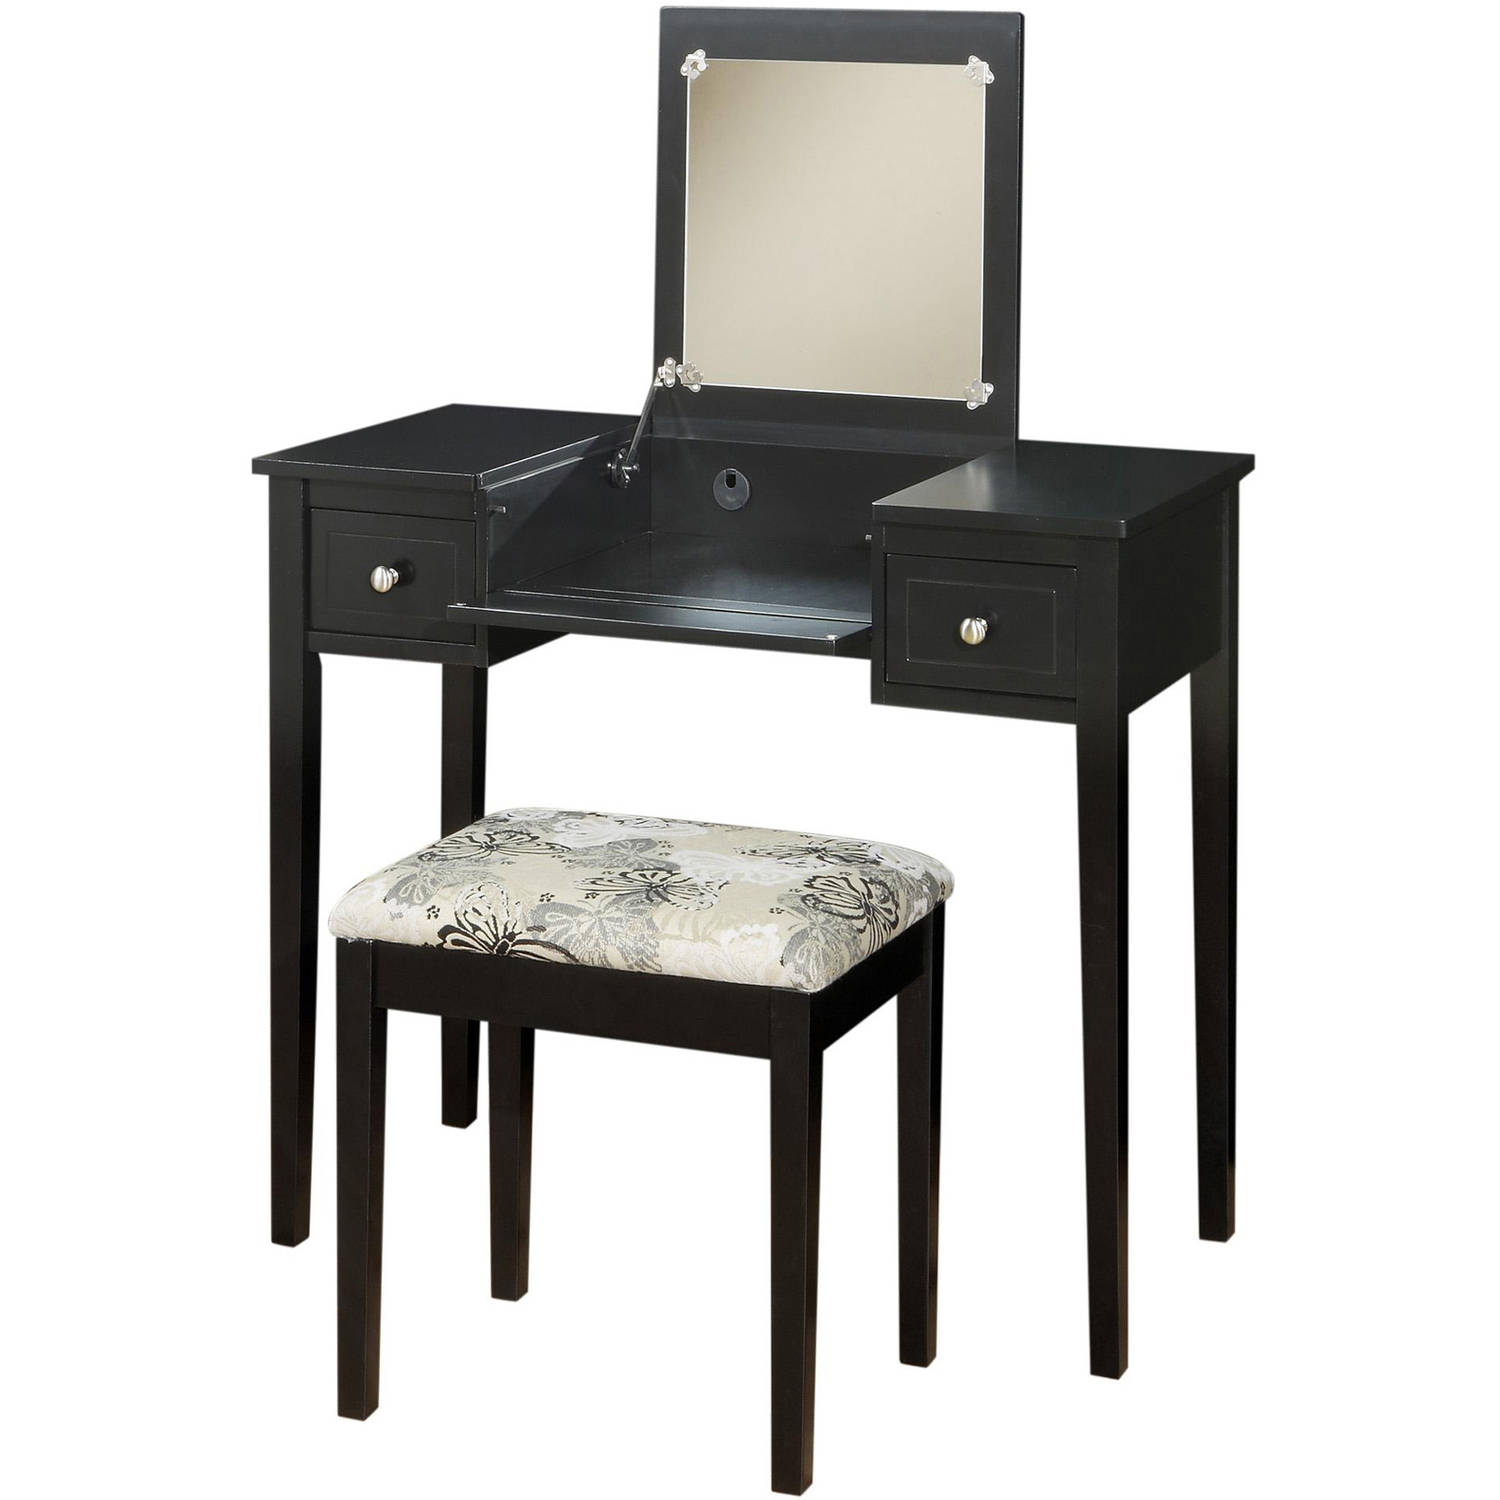 Exceptional Image Is Loading Linon Home Decor Vanity Set With Butterfly Bench